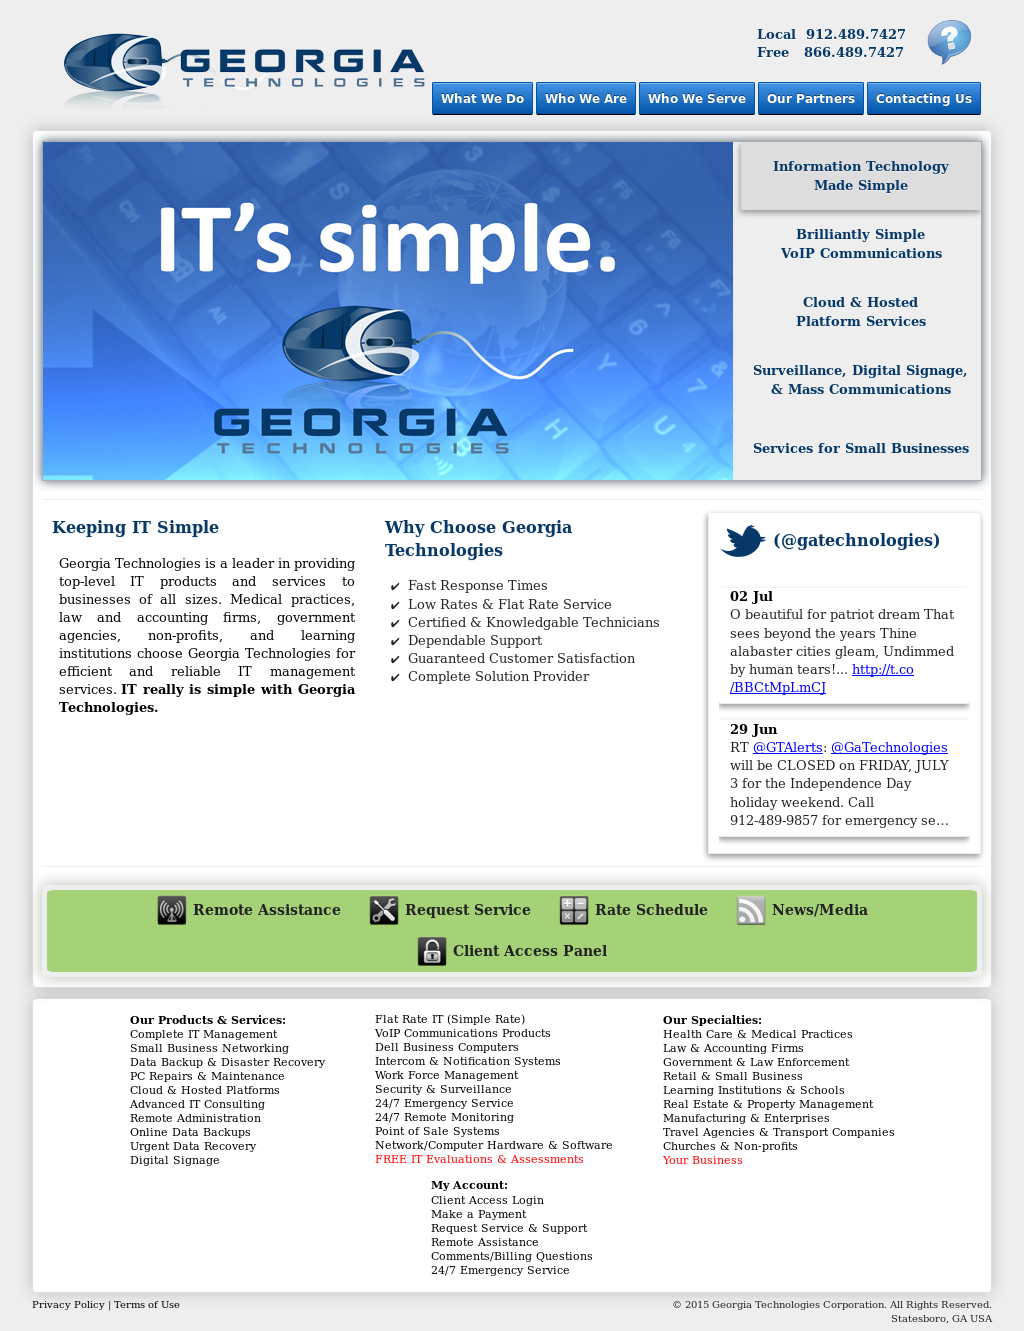 Georgia Technologies Competitors, Revenue and Employees - Owler